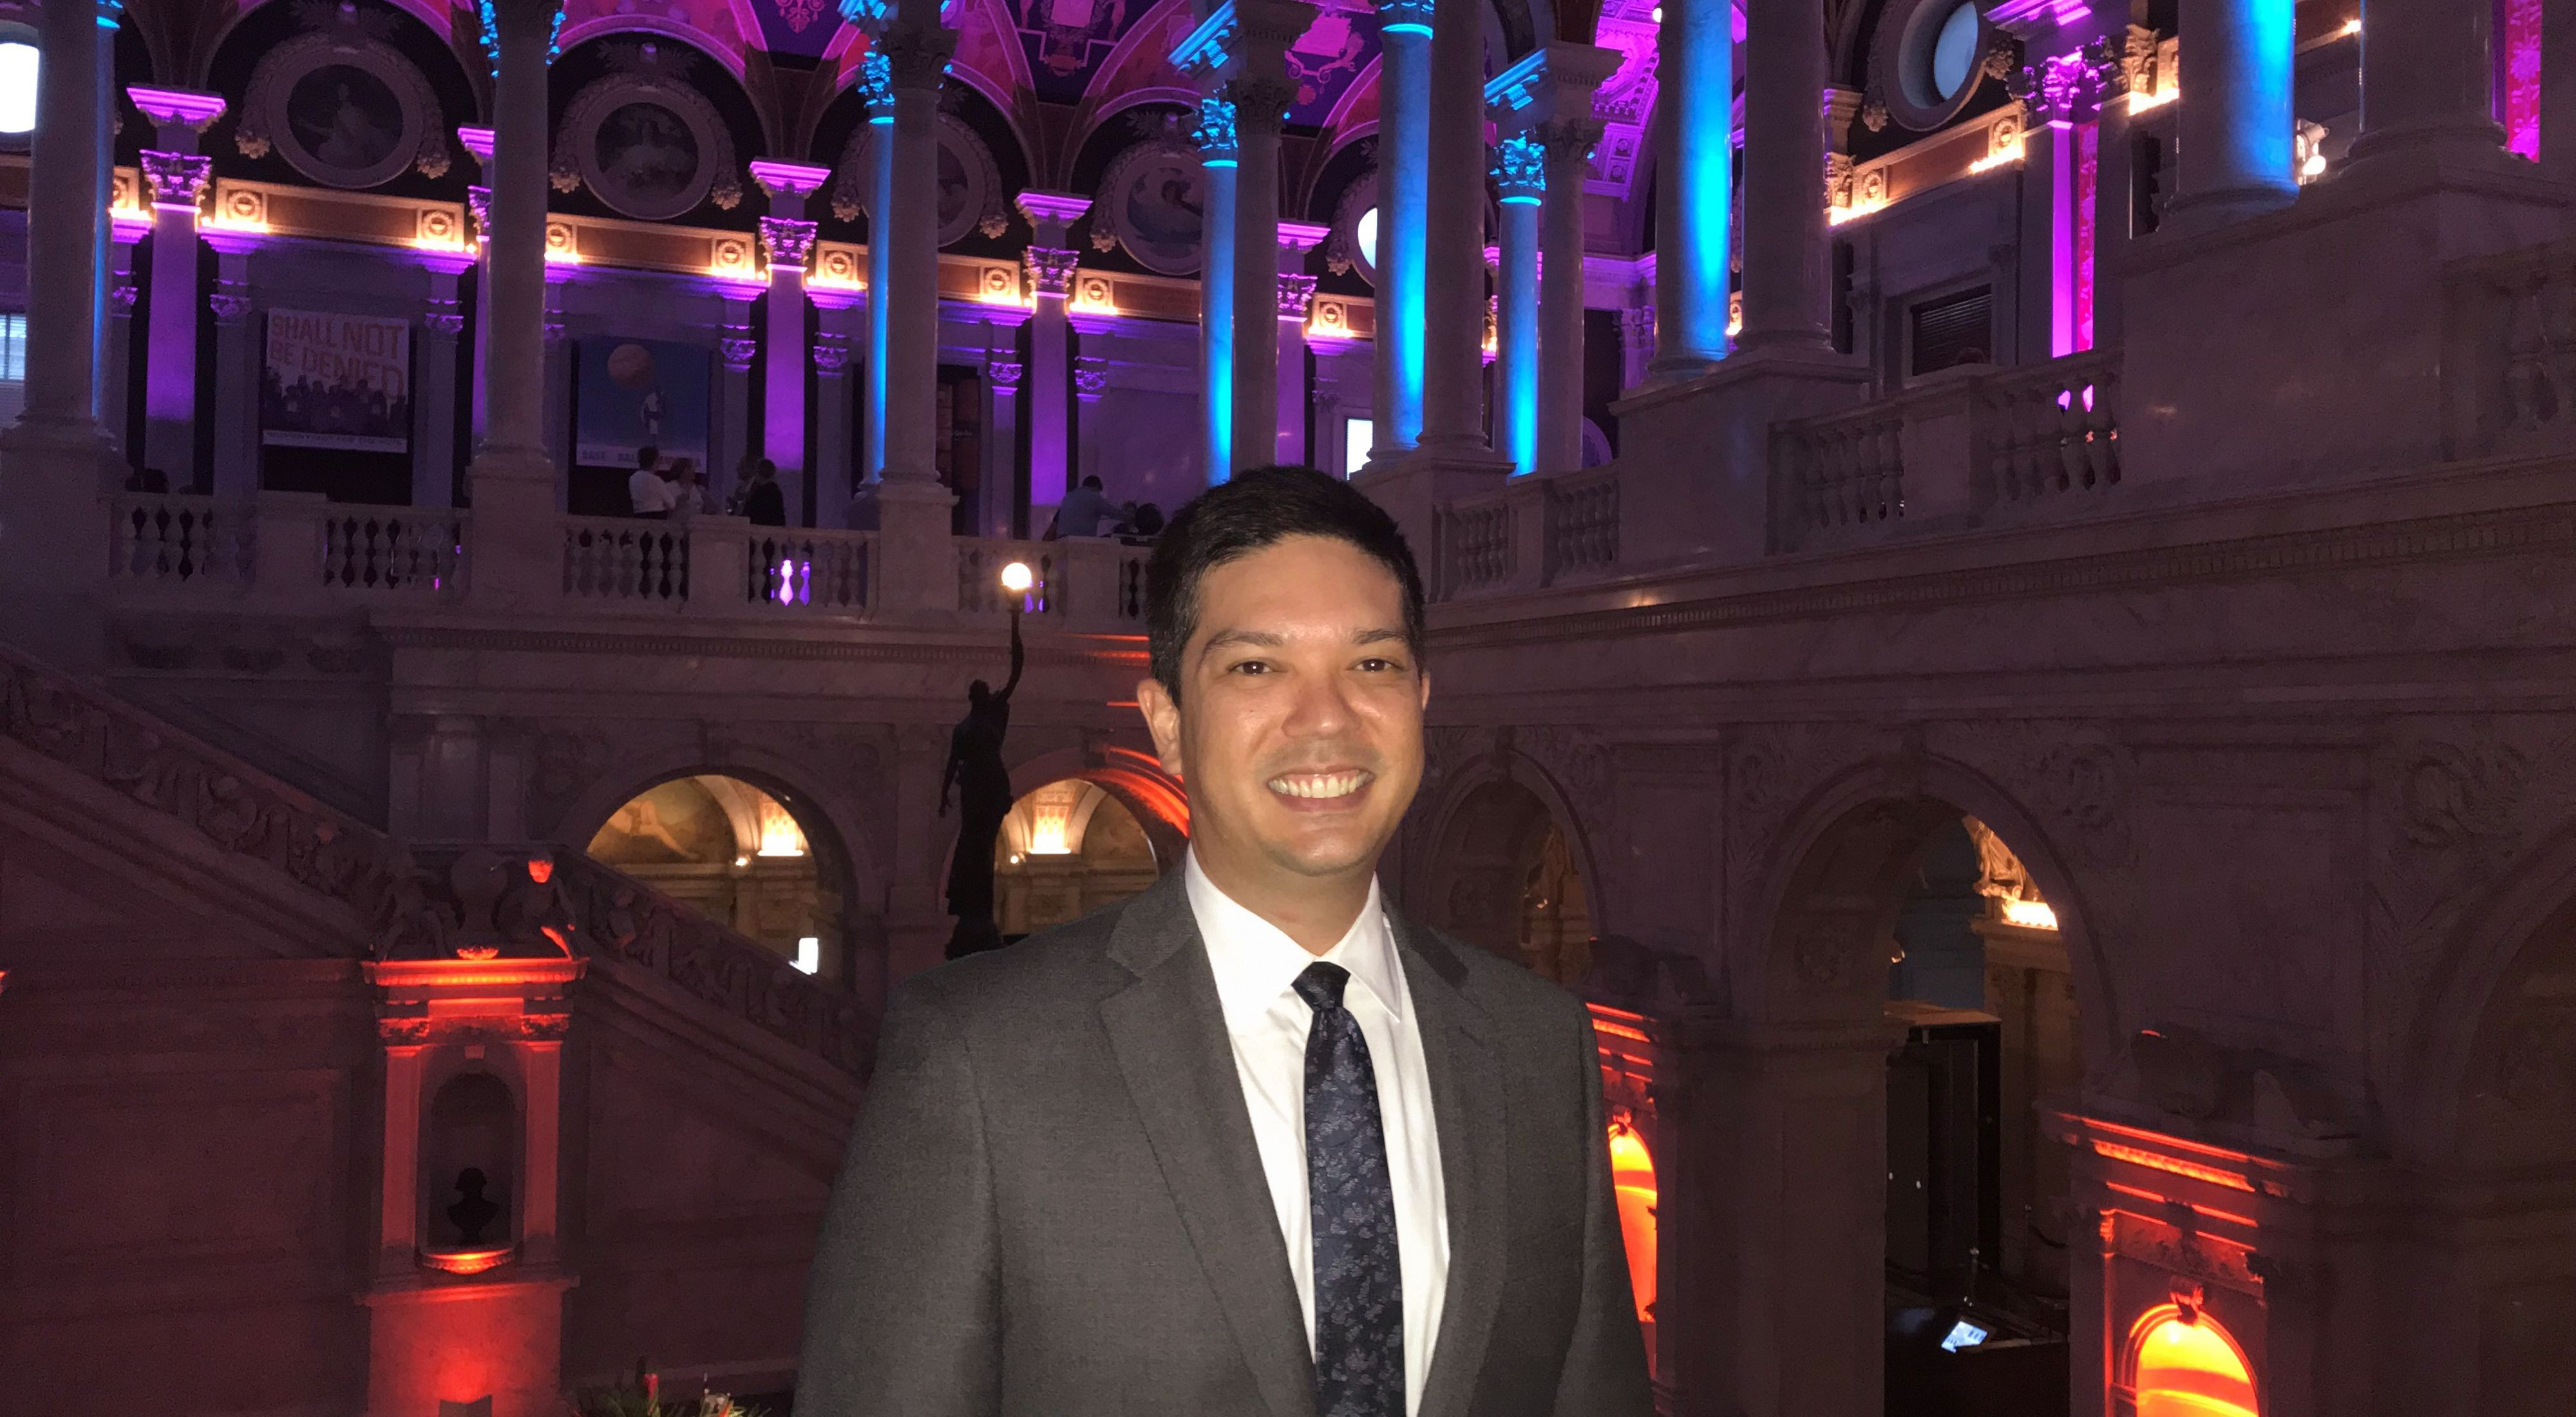 Anthony Ching wearing a black suit stands in a building list with blue and purple lights.